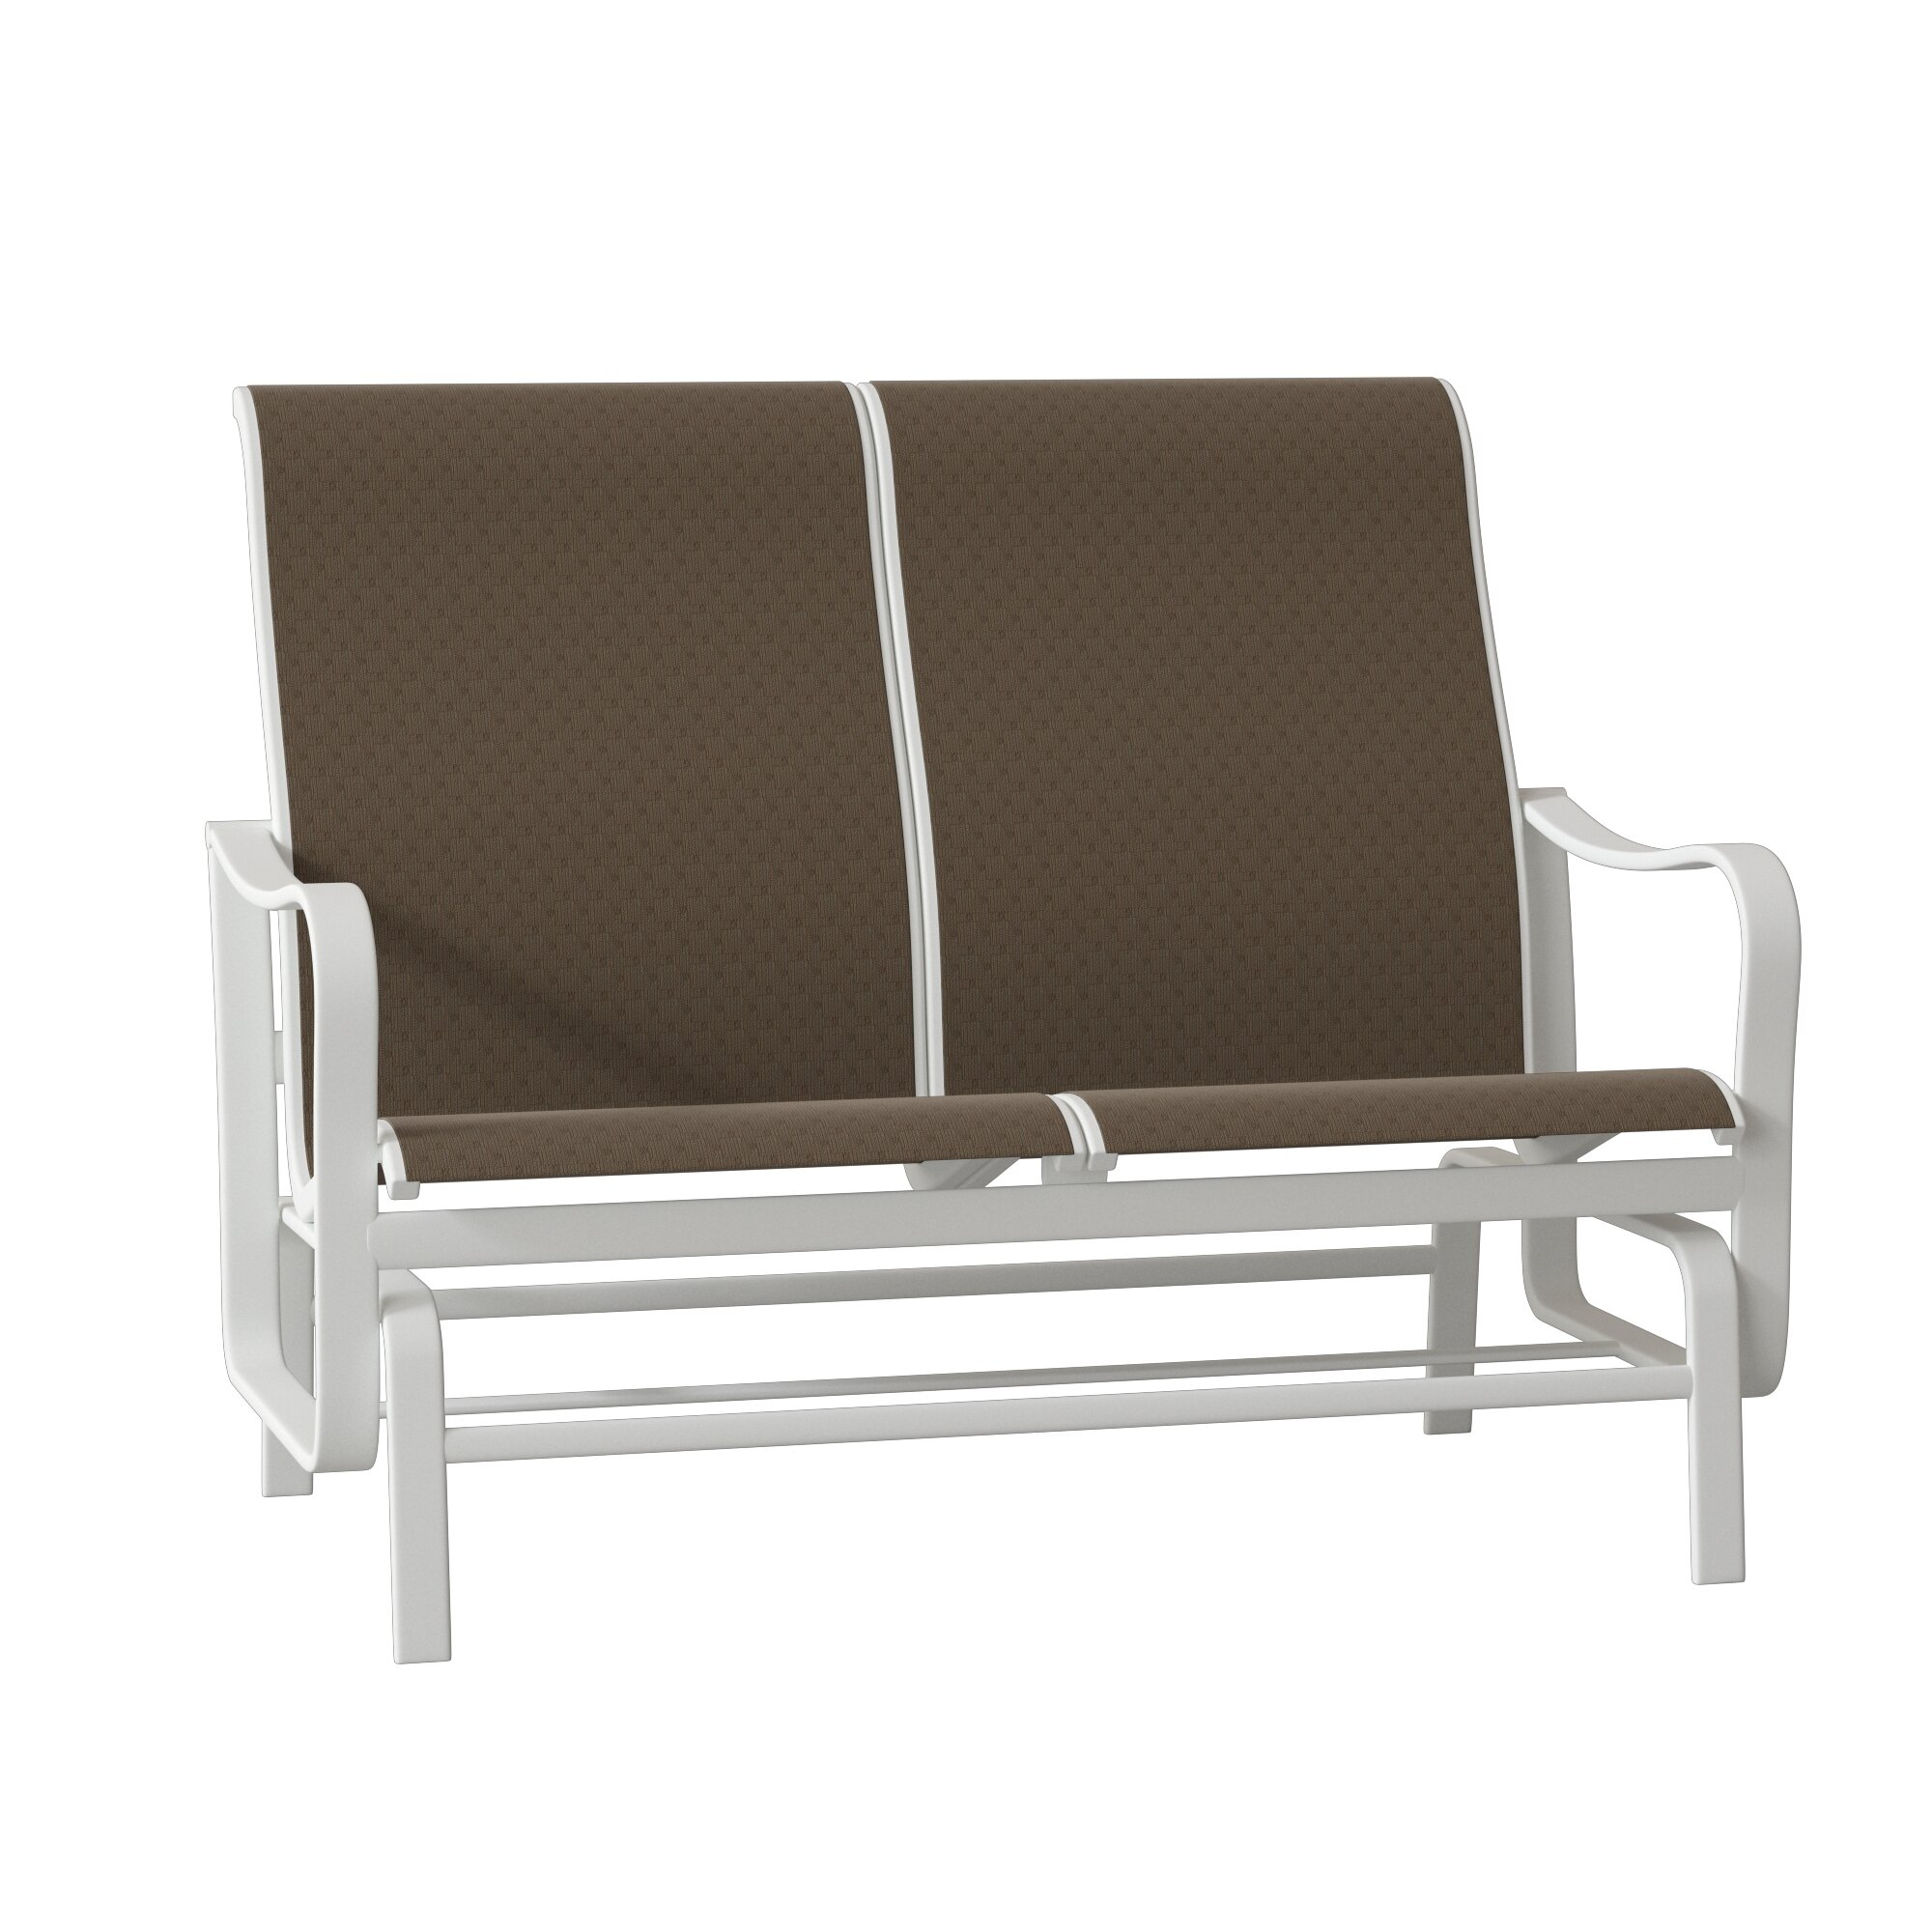 Shoreline Sling Double Glider Bench In Sling Double Glider Benches (View 8 of 25)